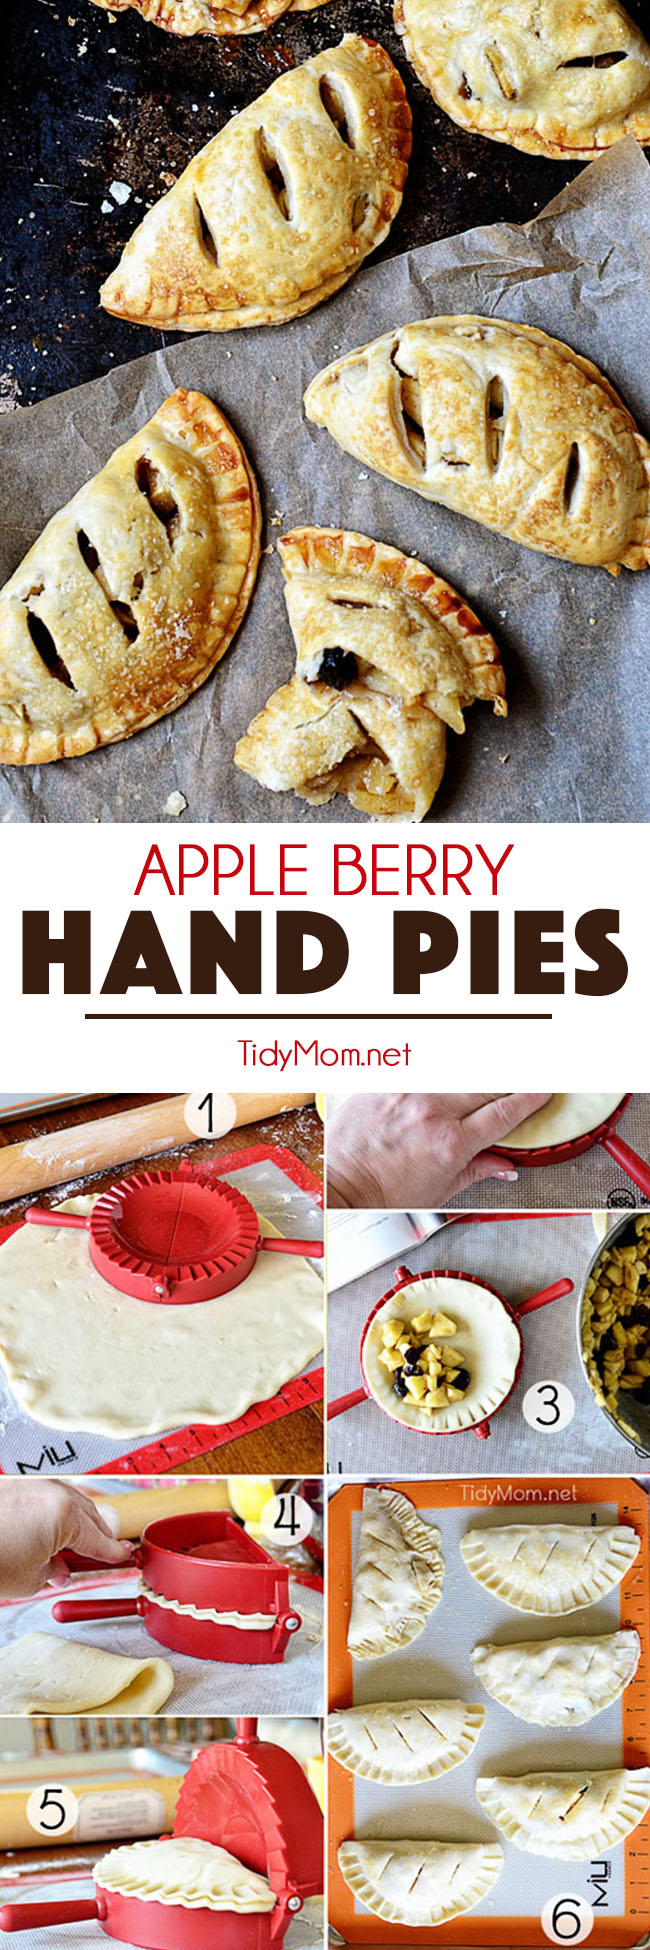 Forget the plates and forks, hand pies are the best way to enjoy pie. Refrigerated crust and a pie press make this APPLE BERRY HAND PIES simple and quick. Print the full recipe at TidyMom.net #pie #handpies #pies #pierecipe #apple #applepie